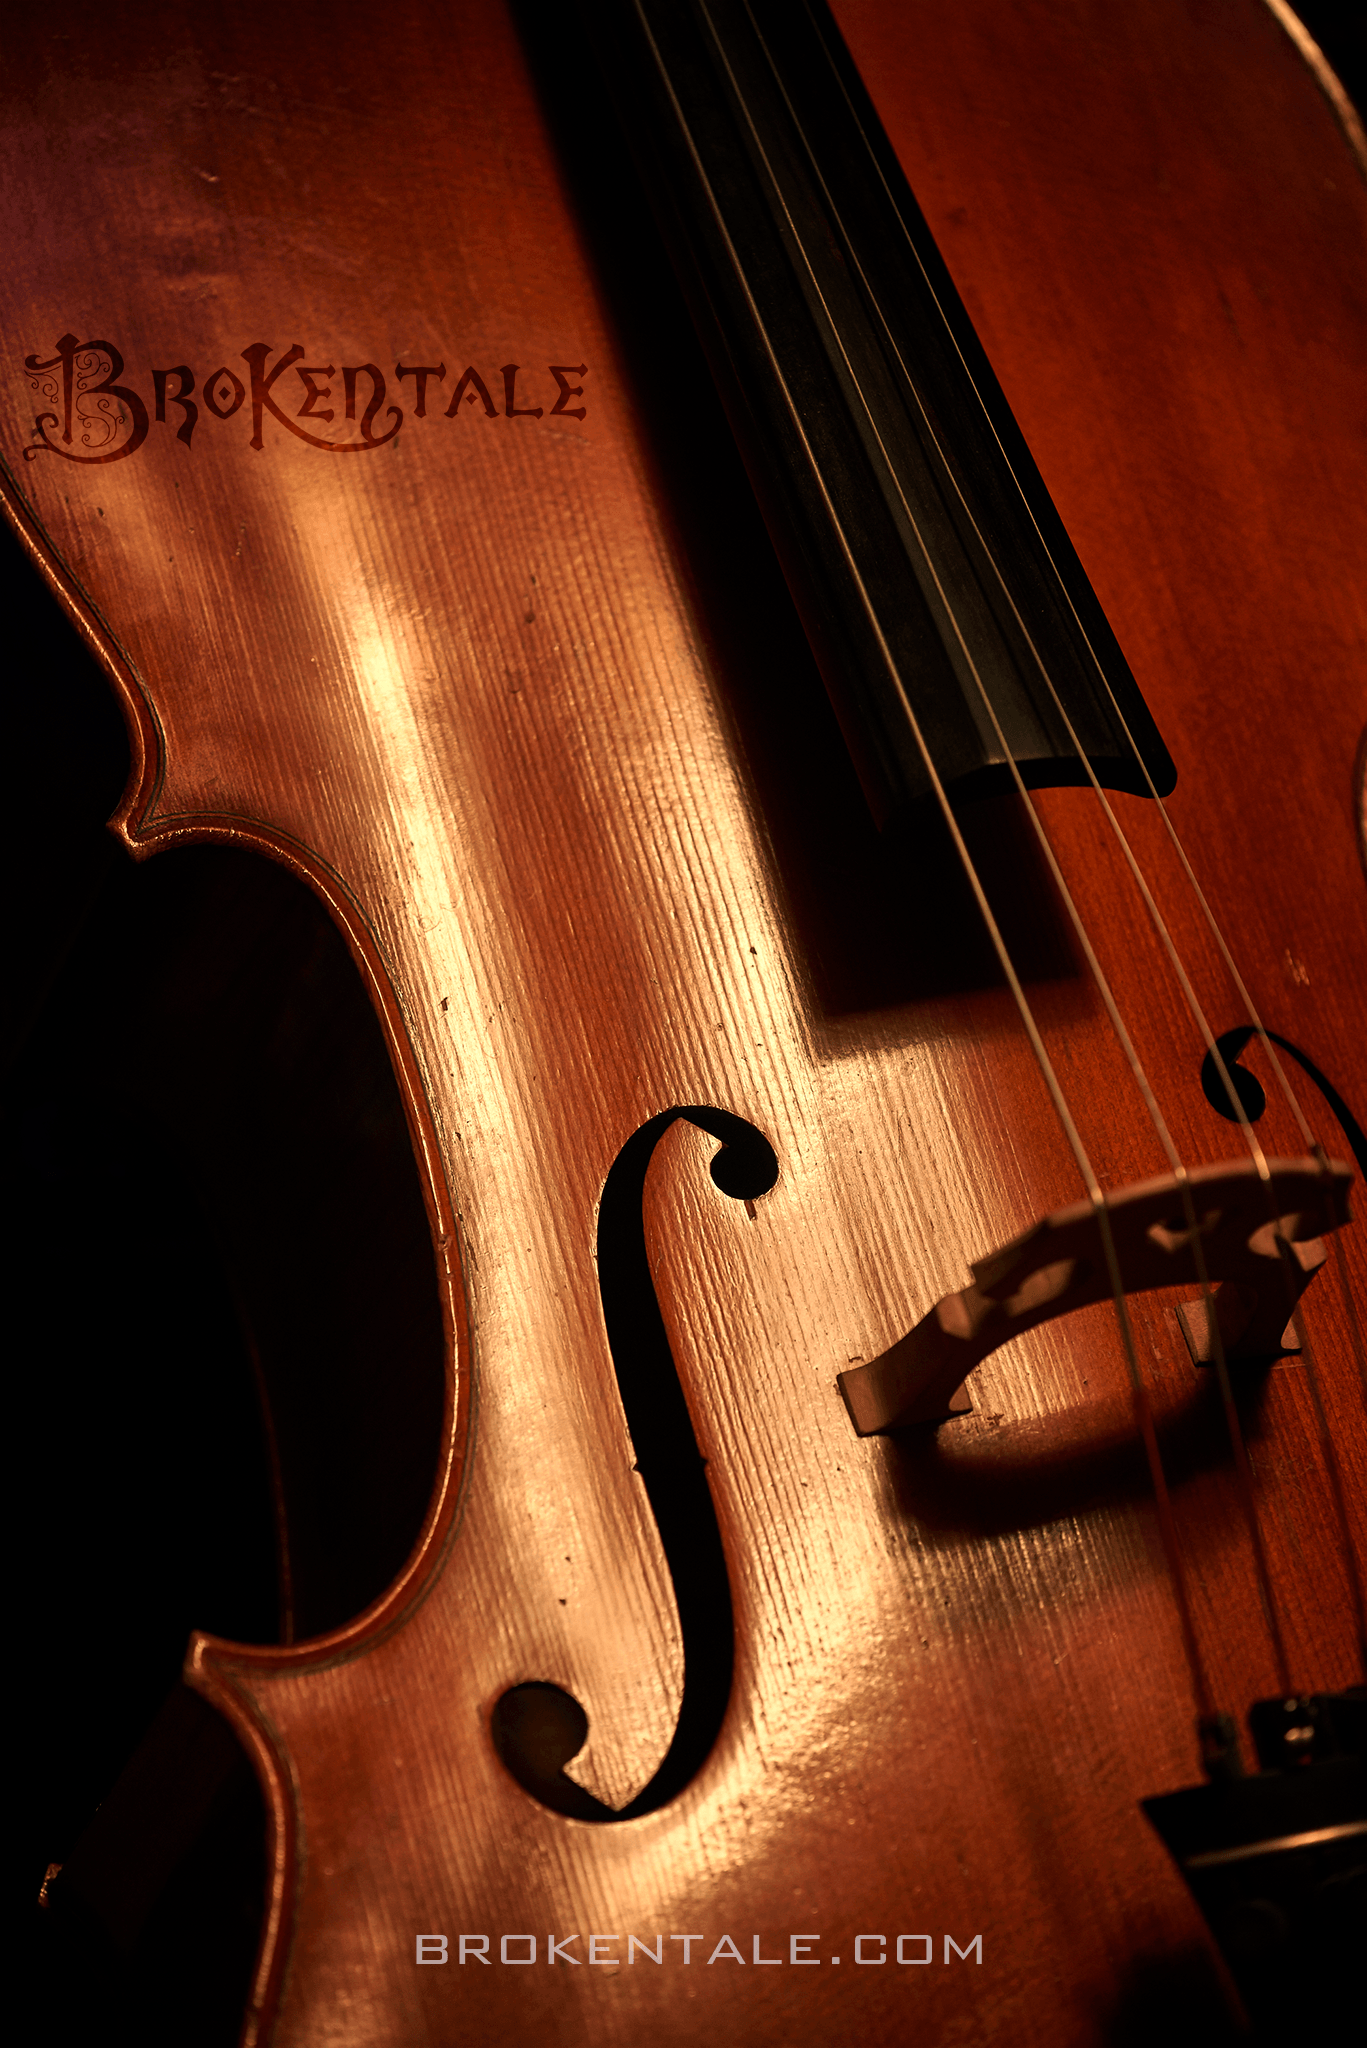 BrokenTale Instruments - Cello